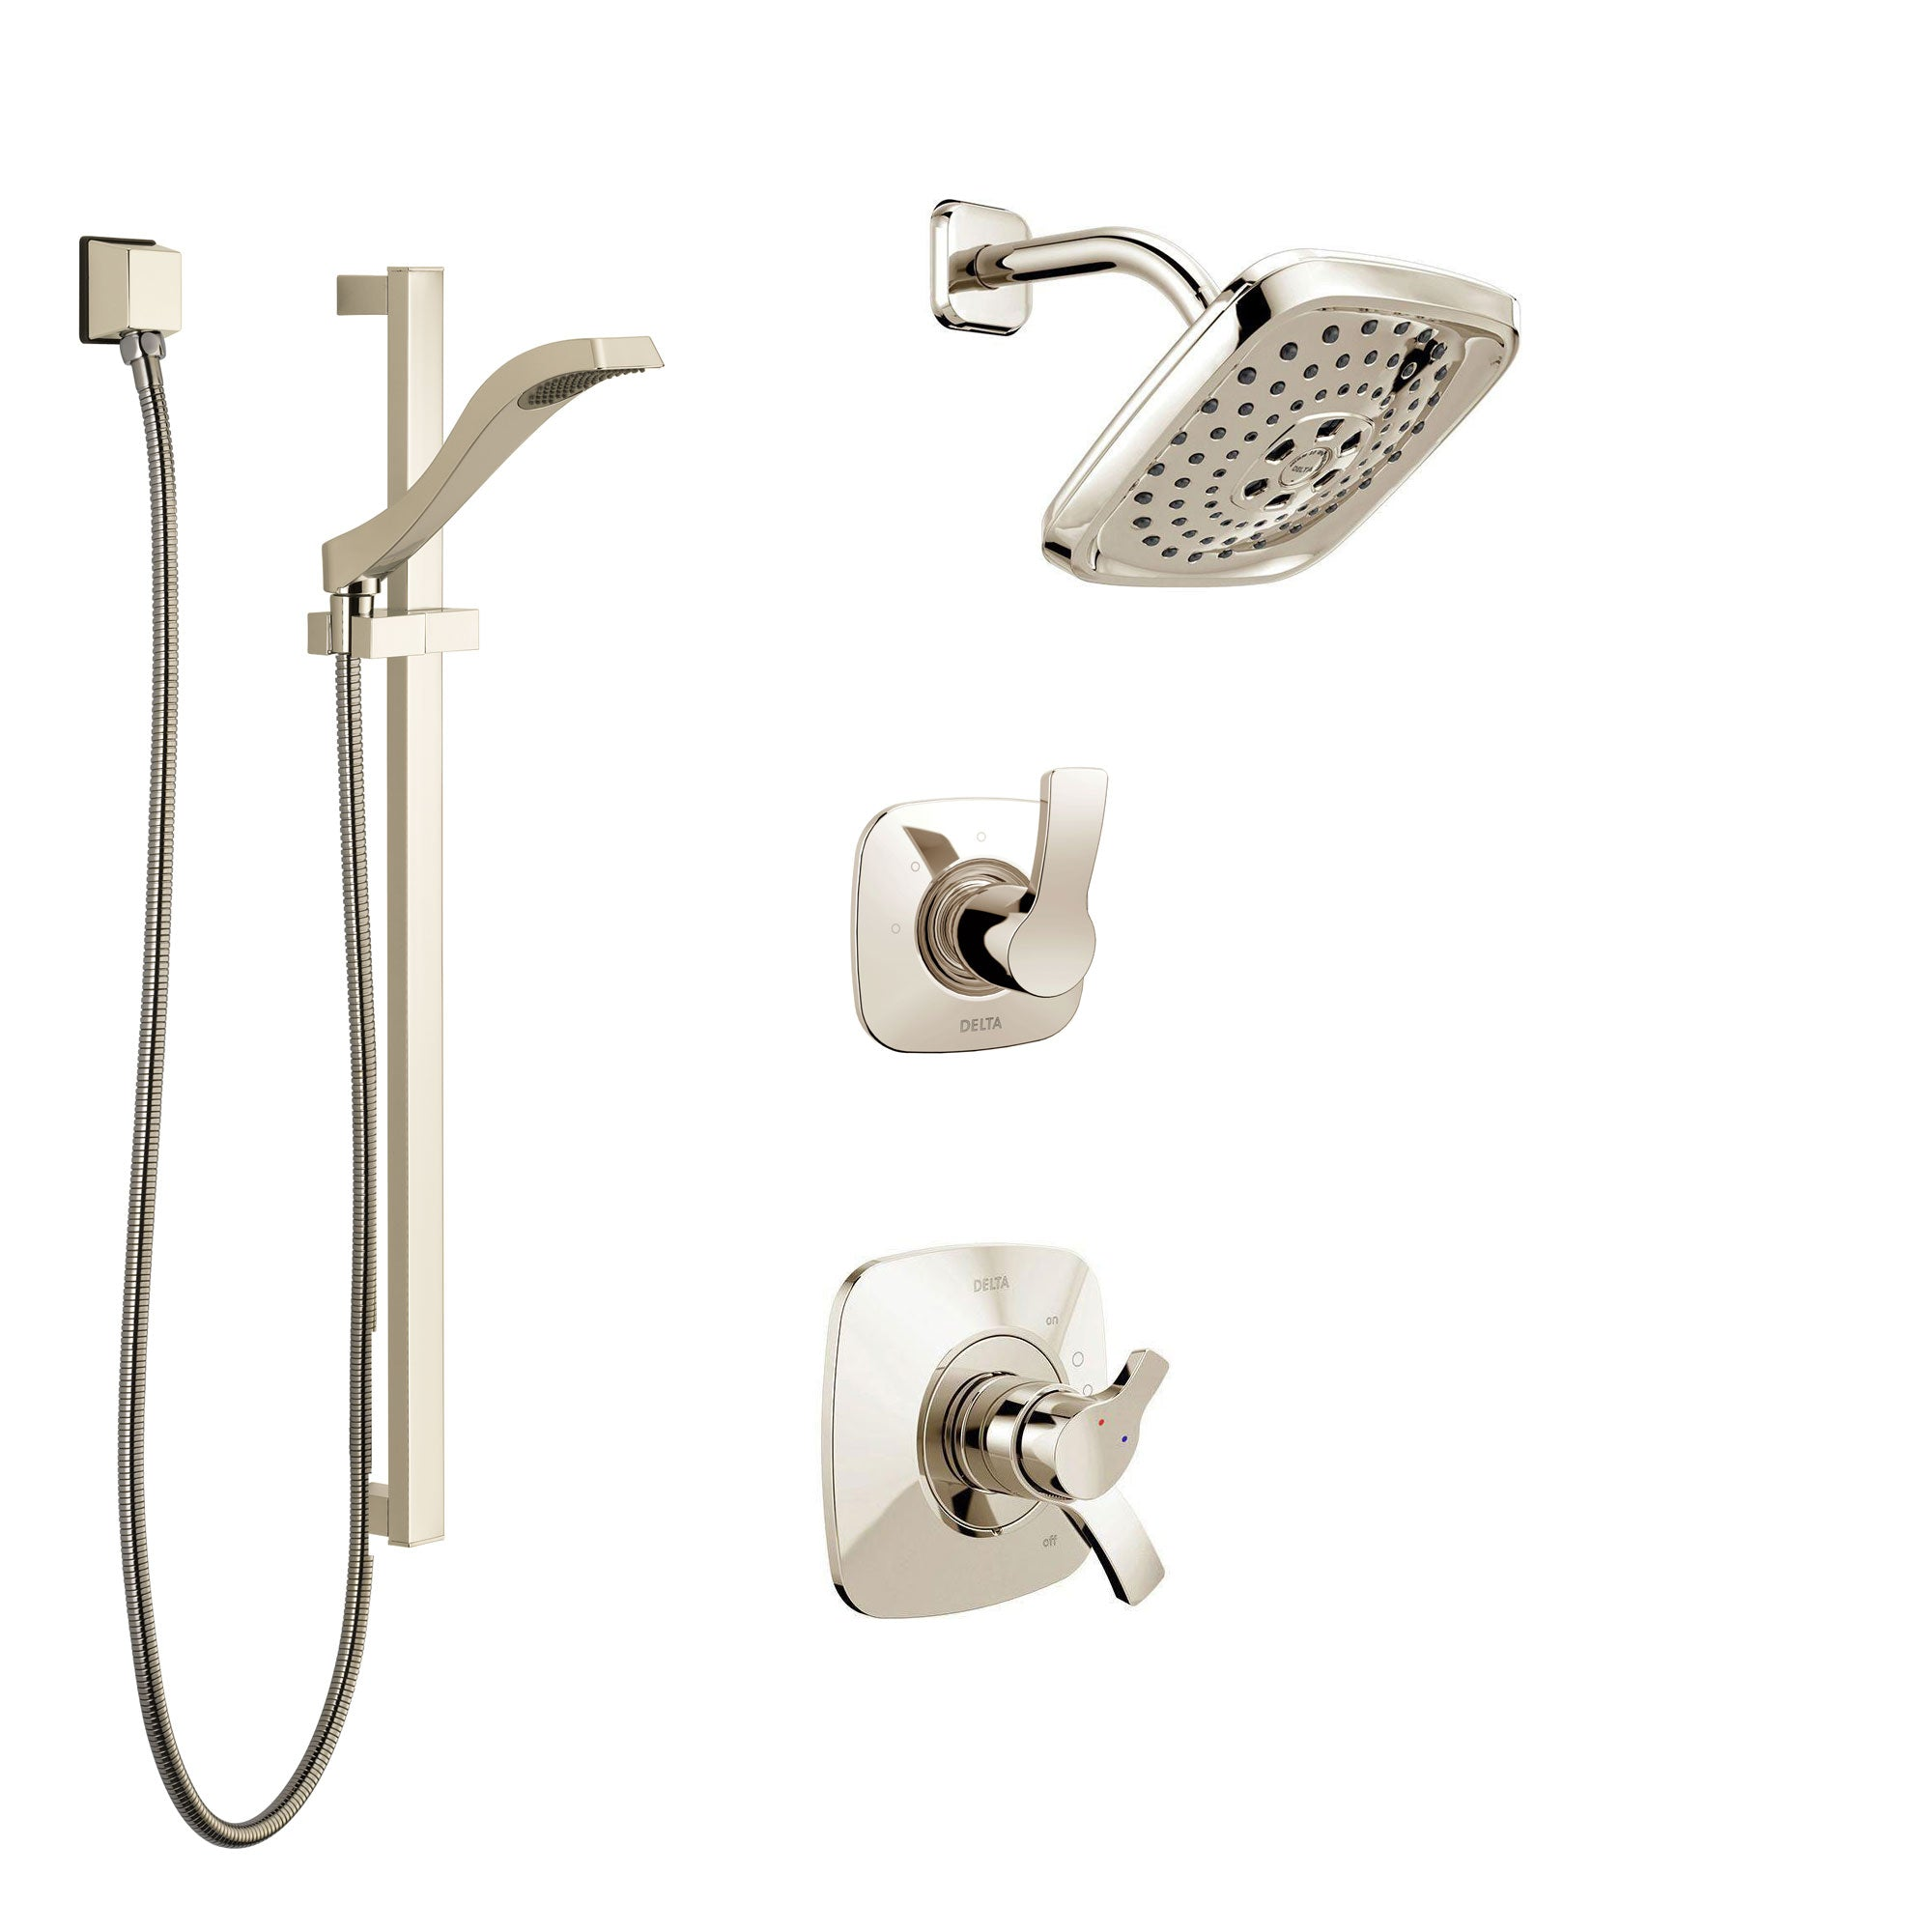 Delta Tesla Polished Nickel Finish Shower System with Dual Control Handle, 3-Setting Diverter, Showerhead, and Hand Shower with Slidebar SS17252PN3